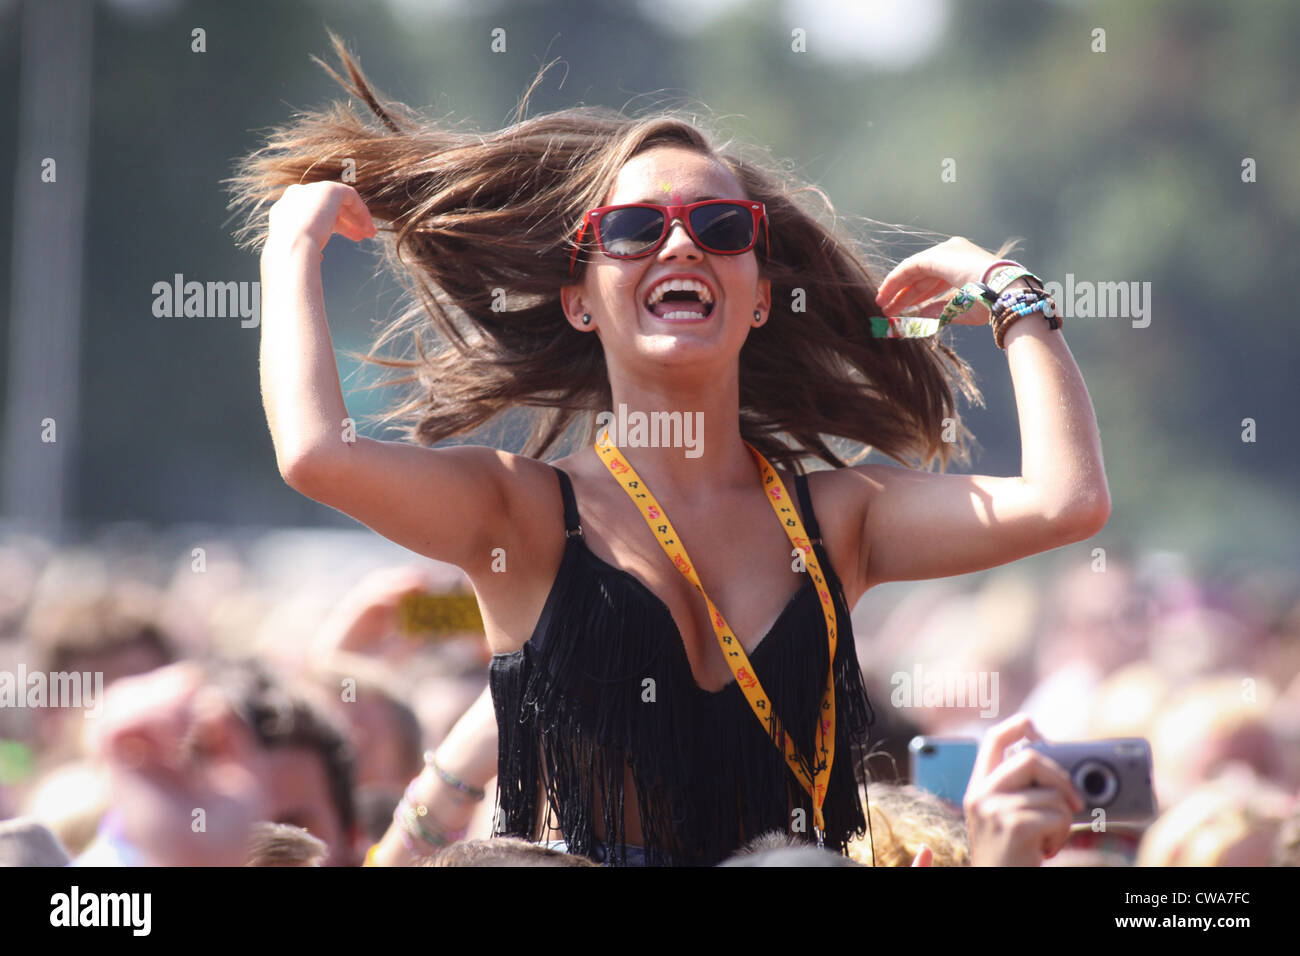 A girl in the crowd enjoying the live music at the V Festival in Hylands Park, Chelmsford, Essex - Stock Image